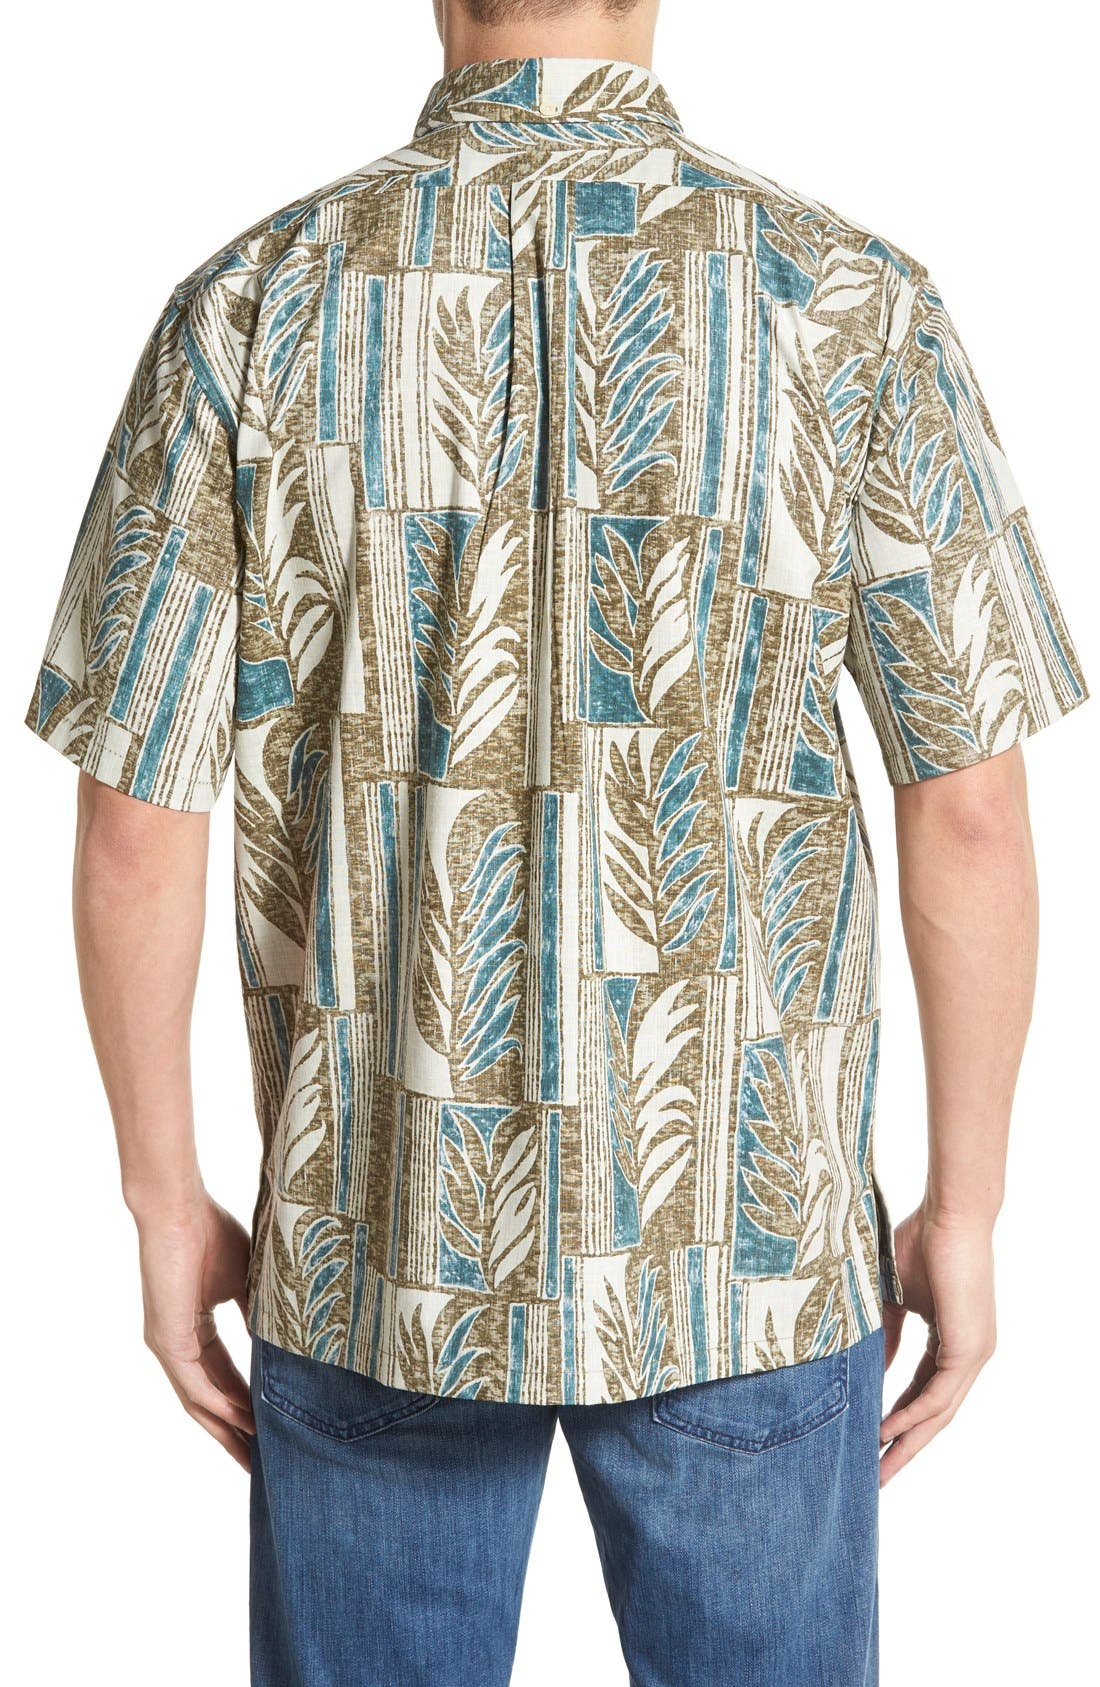 REYN SPOONER,                             'Lau Palaka' Classic Fit Wrinkle Free Pullover Shirt,                             Alternate thumbnail 5, color,                             321